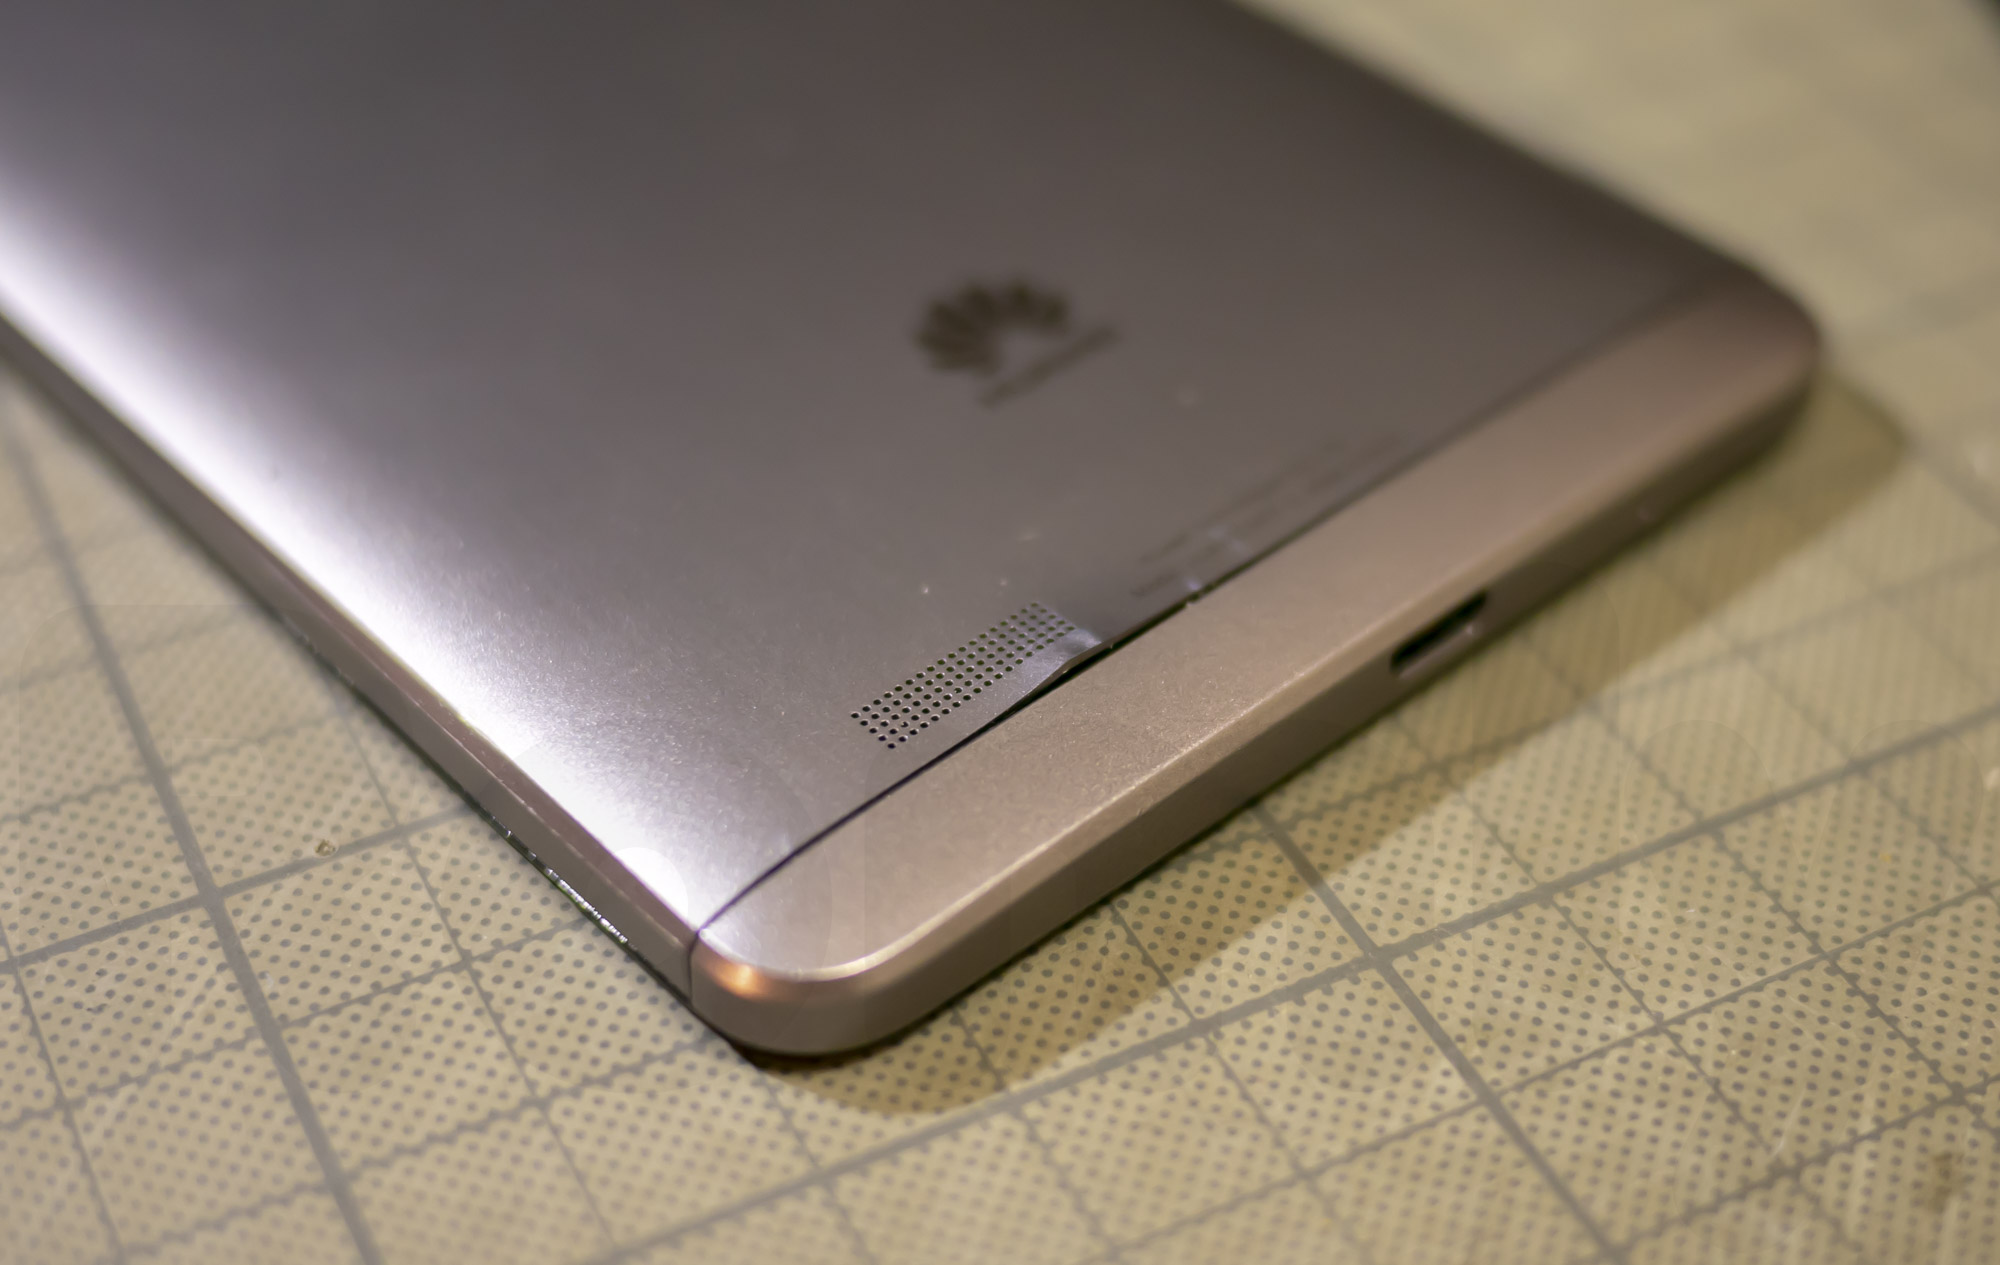 Ascend Mate 7 背面カバー取り外しに伴う歪み 1